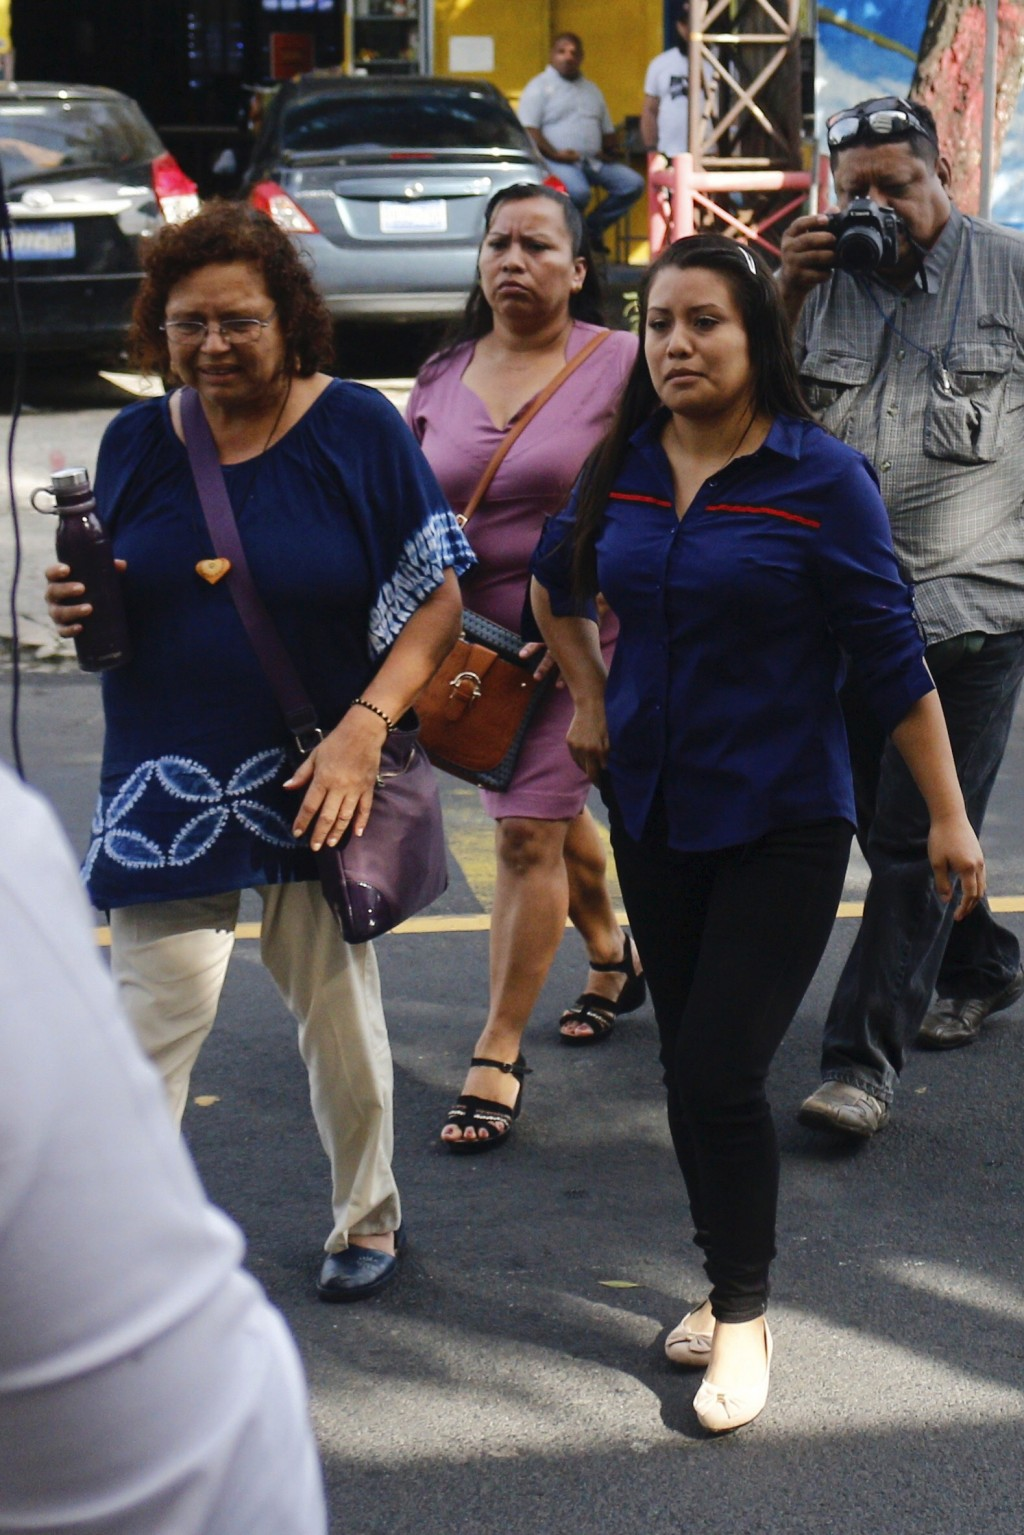 Evelyn Beatriz Hernandez, right, arrives to court for a new trial with a new judge, after her 30-year sentence for abortion was overturned in February